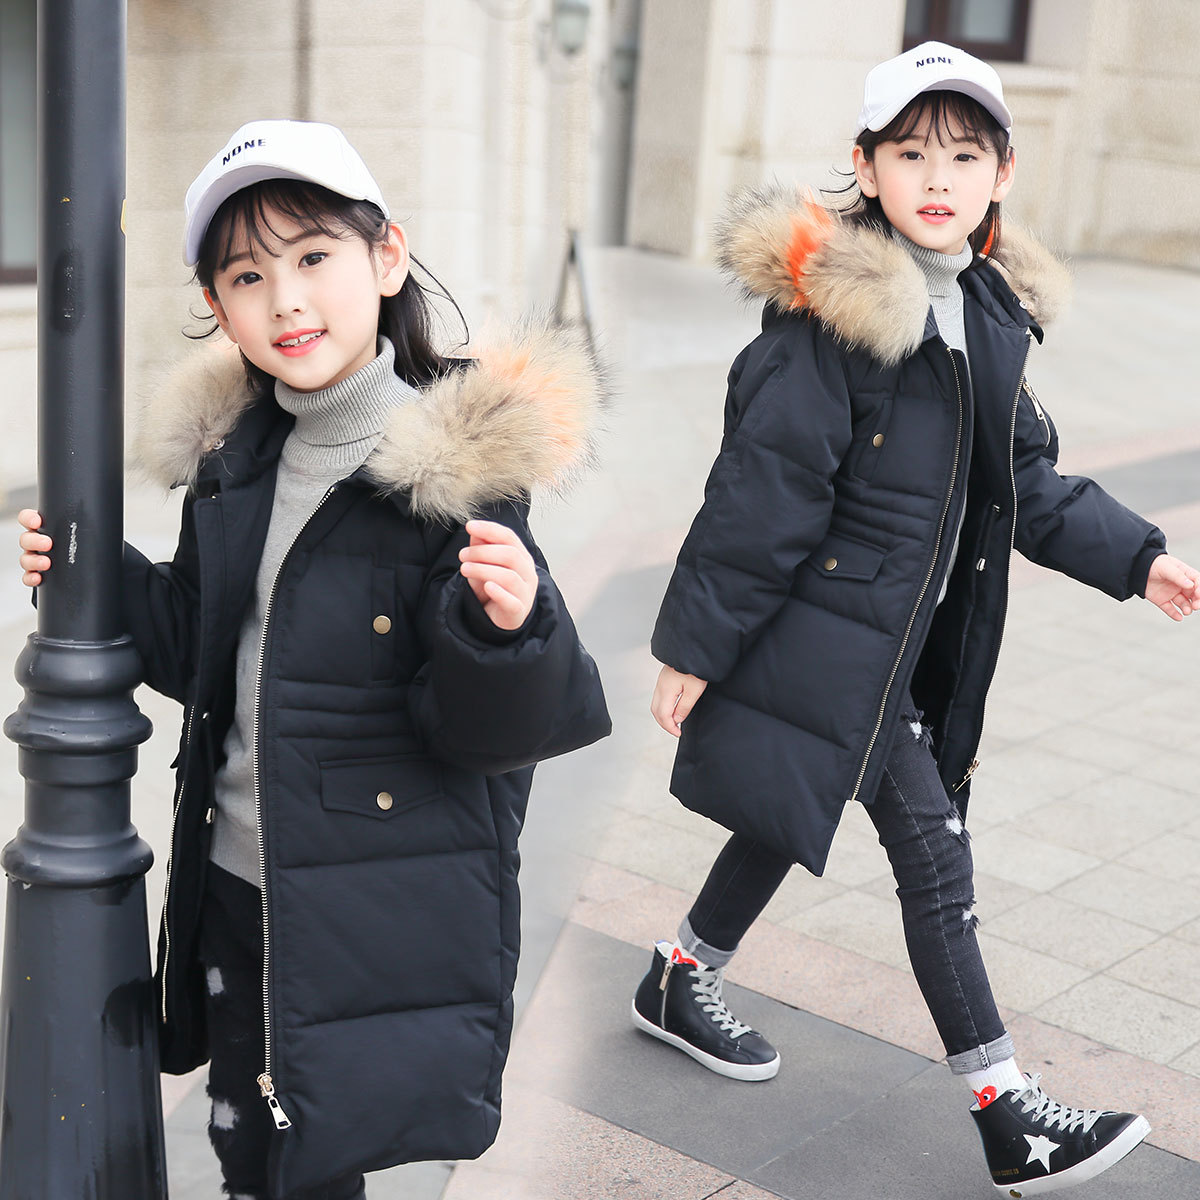 OLEKID 2018 Winter Down Jacket For Girl Warm Thicken Hooded Long Girls Winter Coat 7-14 Years Kids Outerwear Winterjas Meisjes 2015 new hot winter thicken warm woman down jacket coat parkas outerwear hooded splice mid long plus size 3xxxl luxury cold